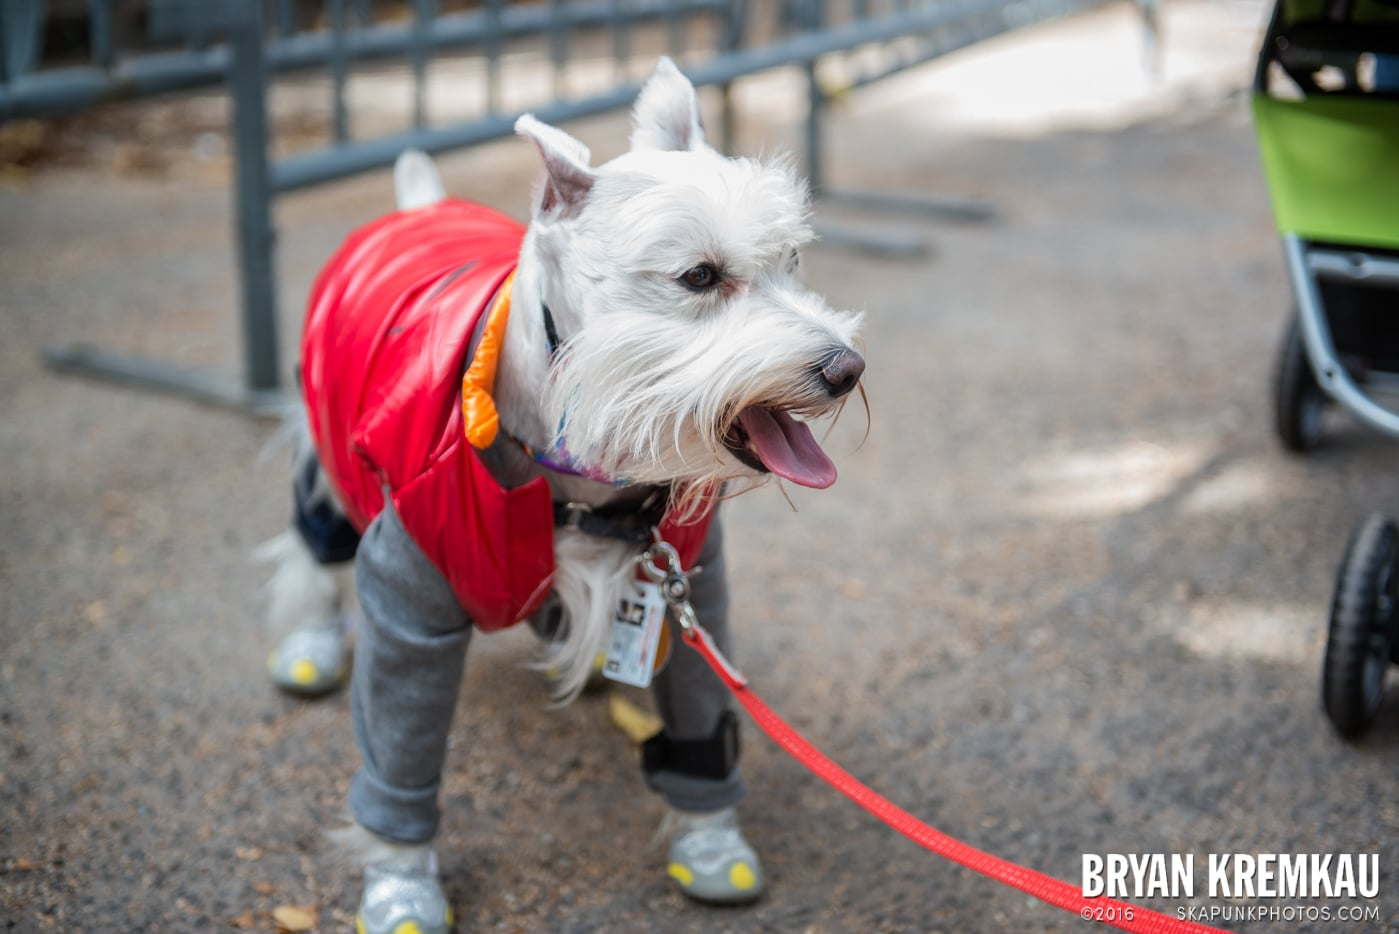 Tompkins Square Halloween Dog Parade 2015 @ Tompkins Square Park, NYC – 10.24.15 (74)